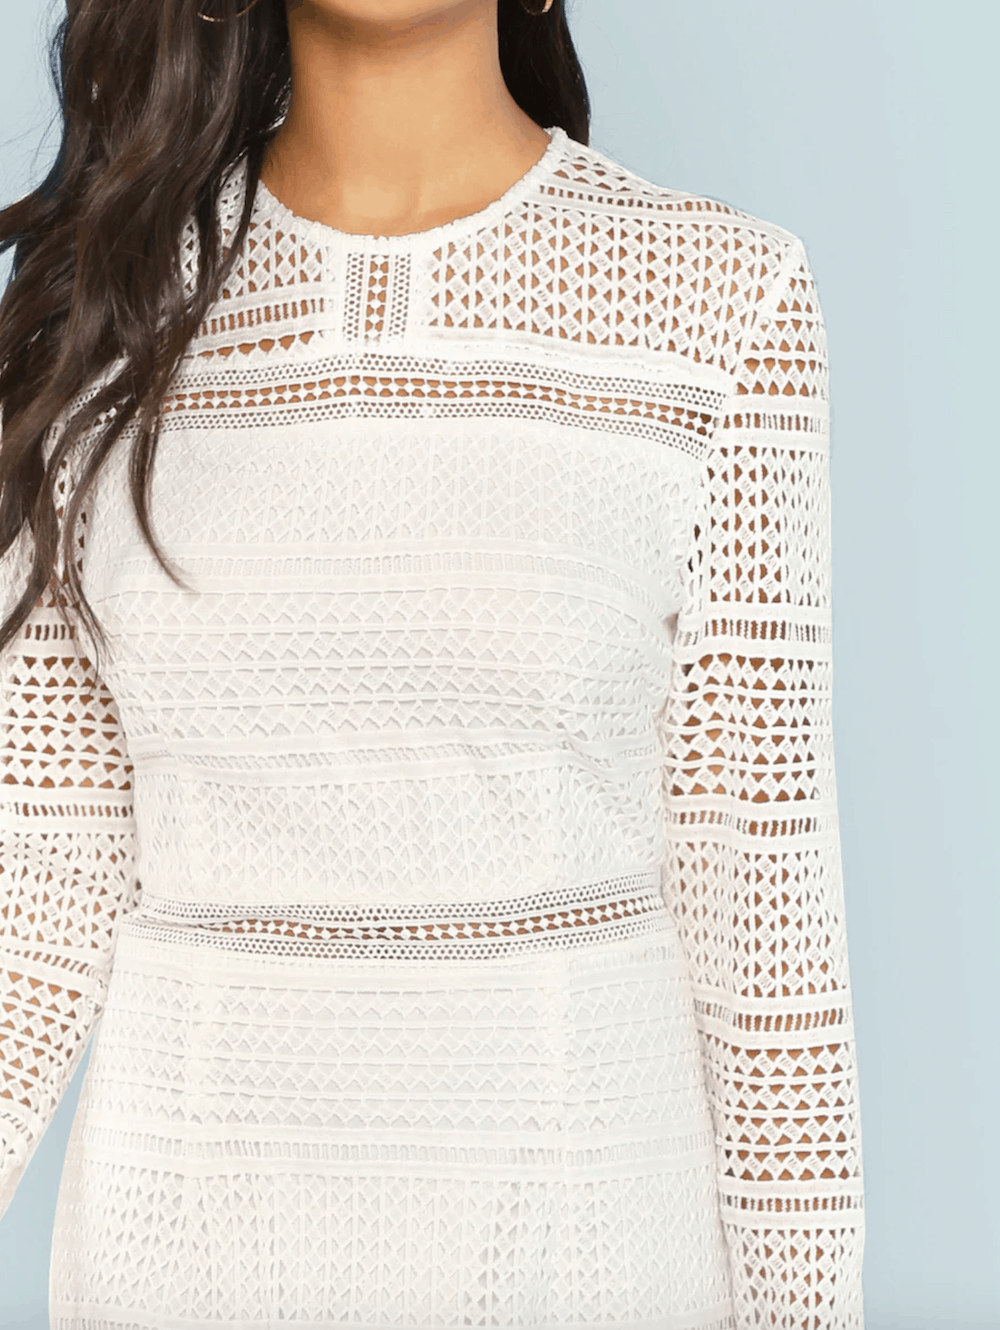 Bridal Shower Dress for the Bride White Guipure Lace Overlay Bodycon Dress 2